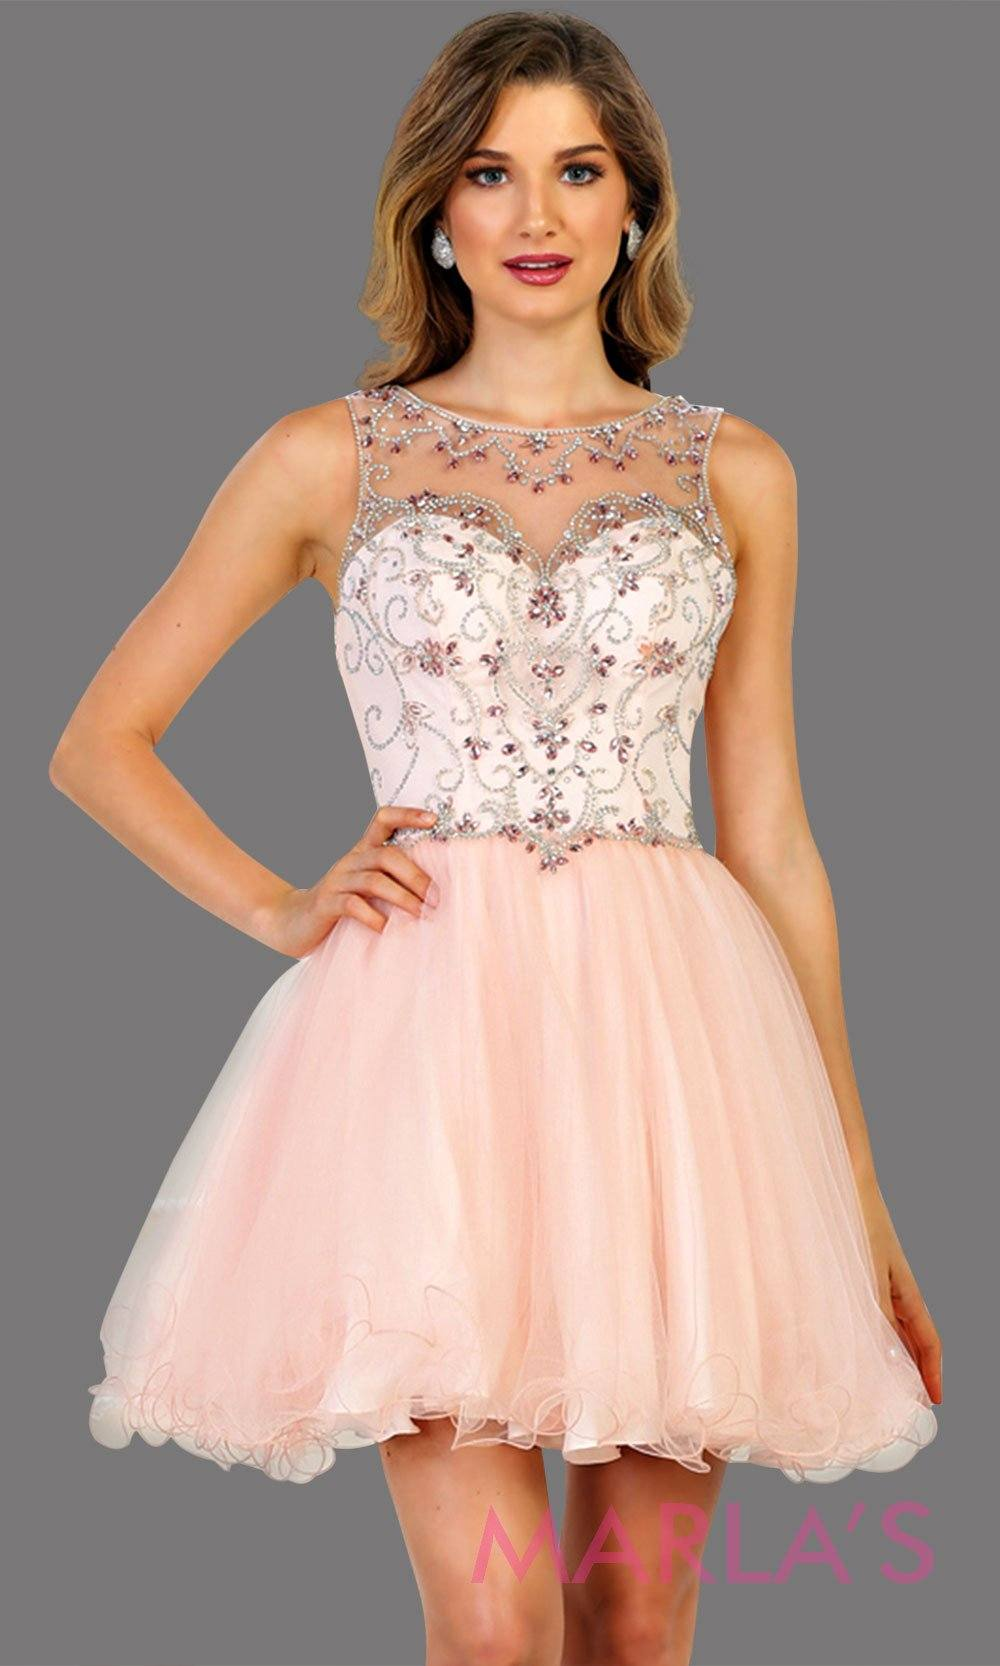 Short high neck blush pink puffy grade 8 grad dress or homecoming. Perfect for light pink graduation, homecoming, debut, Quinceanera Damas, Sweet 16, Sweet 15. Available in plus sizes.